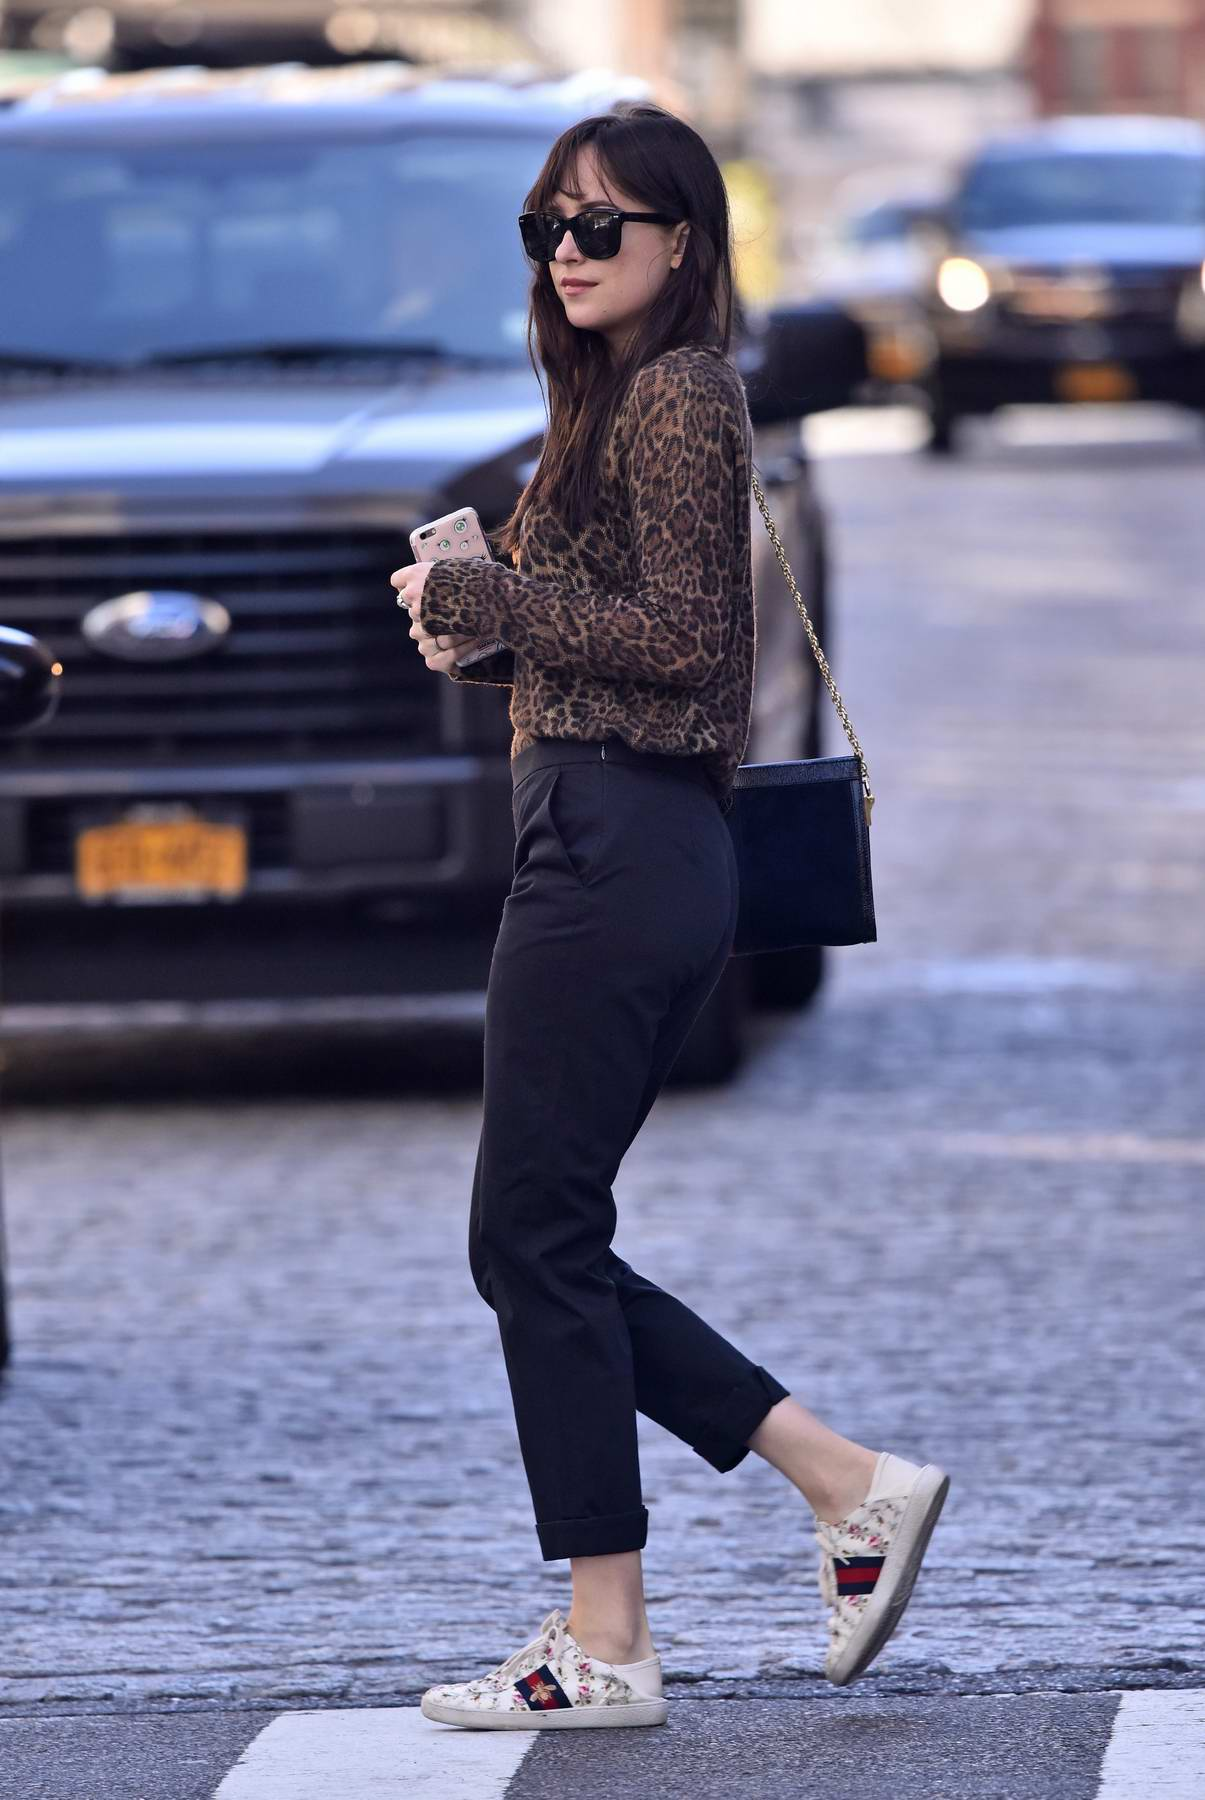 789041f39 dakota johnson wears a leopard top paired with gucci white sneakers while  crossing the street in new york city-021017_1